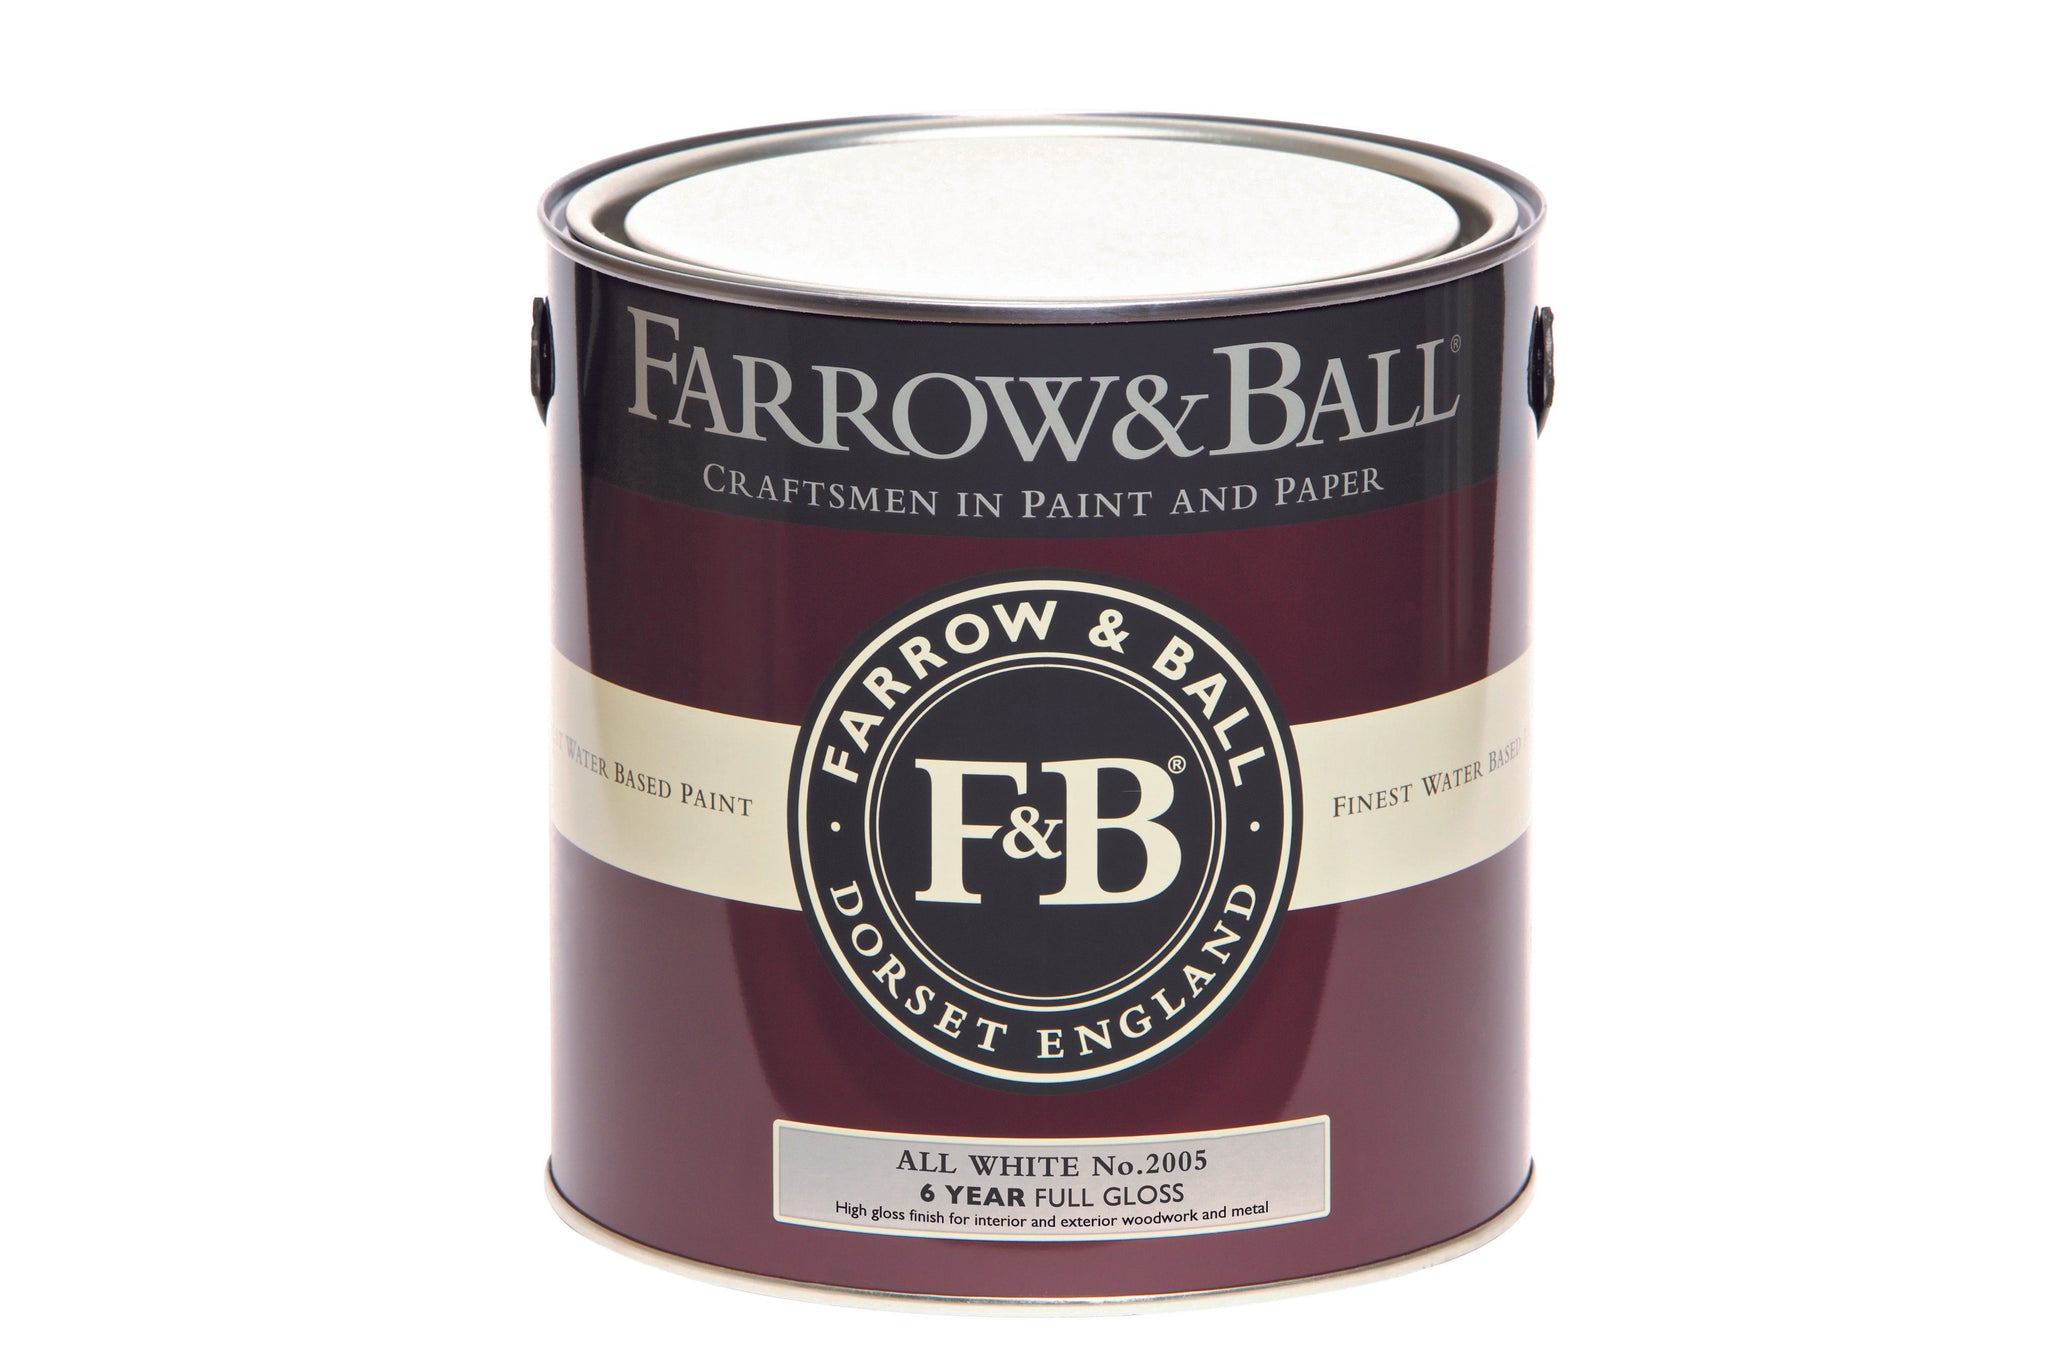 Farrow & Ball Full Gloss